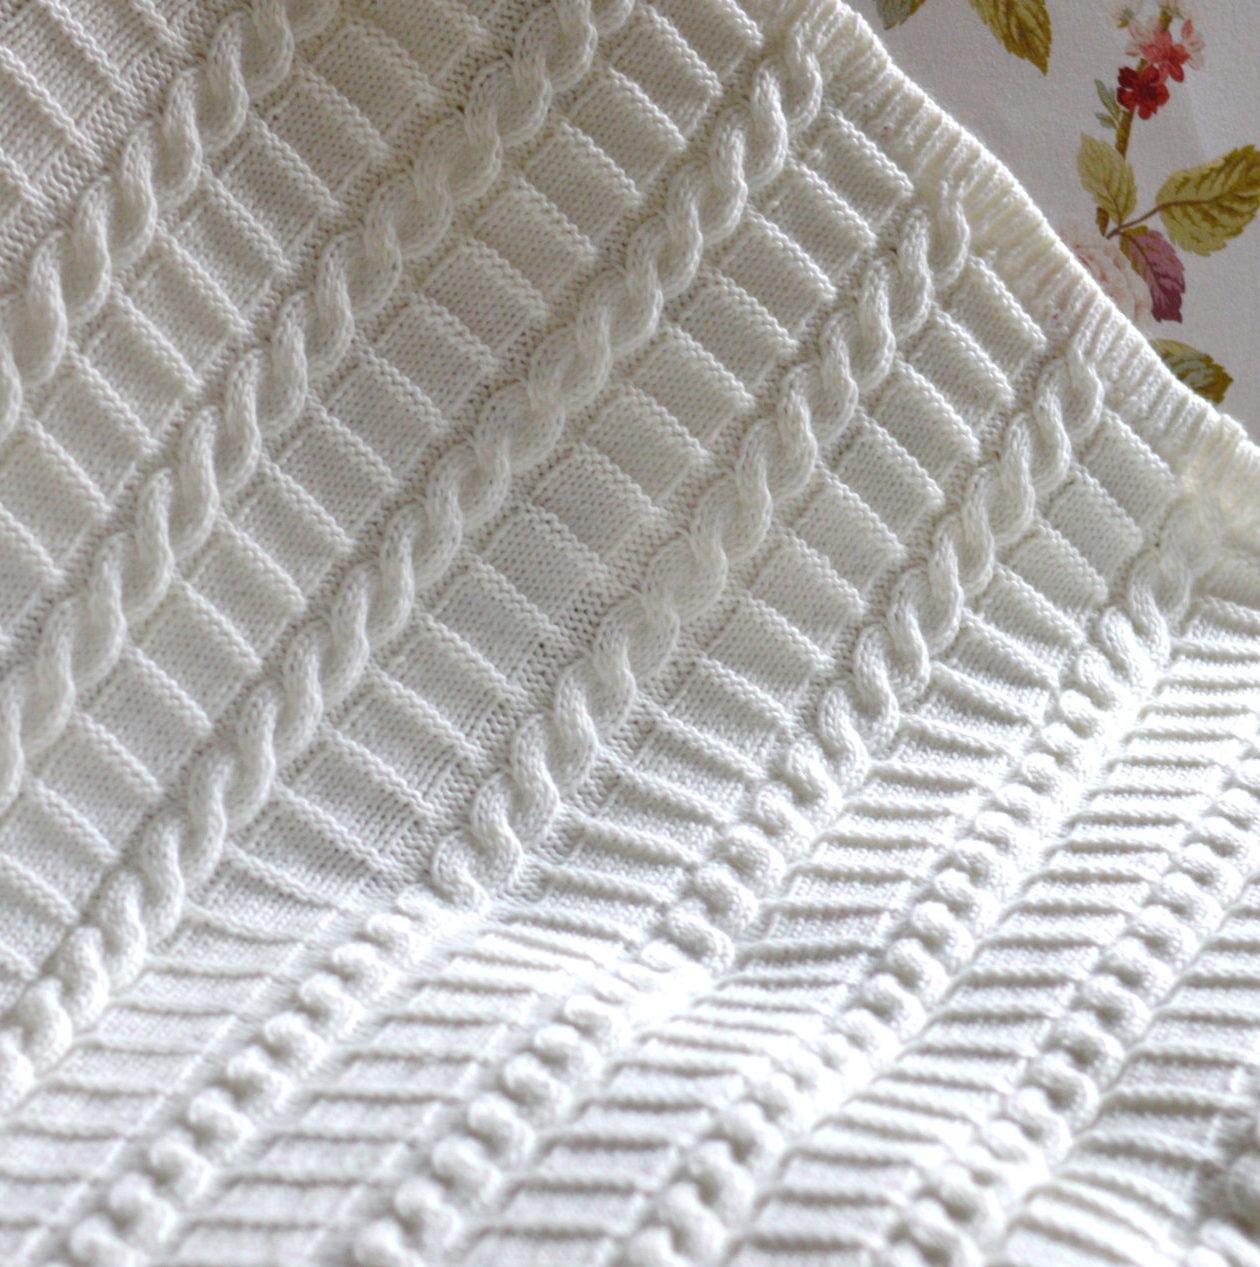 Knitting Pattern for Easy Cable Blanket